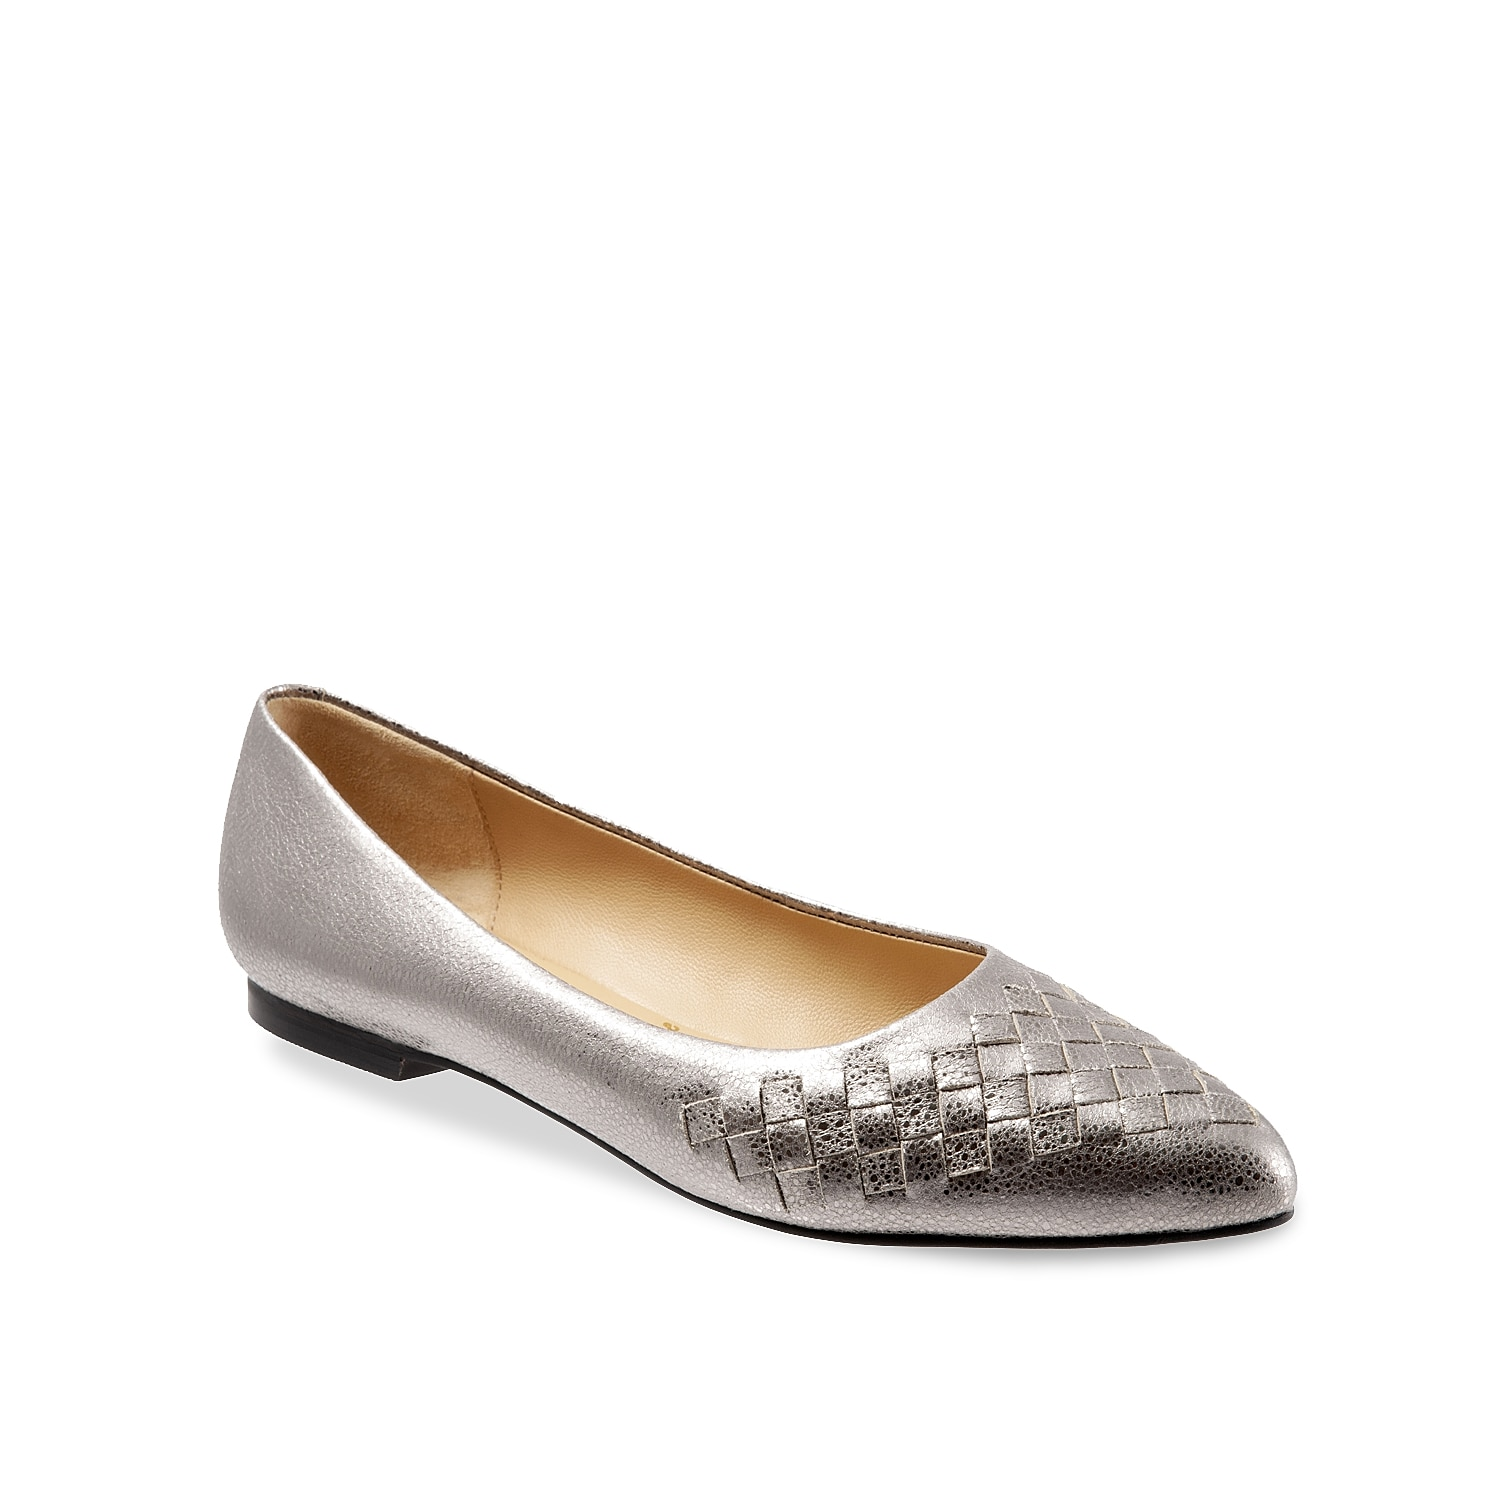 The classic flat gets a modern update with the Estee from Trotters. Featuring a woven leather upper and smooth leather lining, this flat will become a staple in your wardrobe.